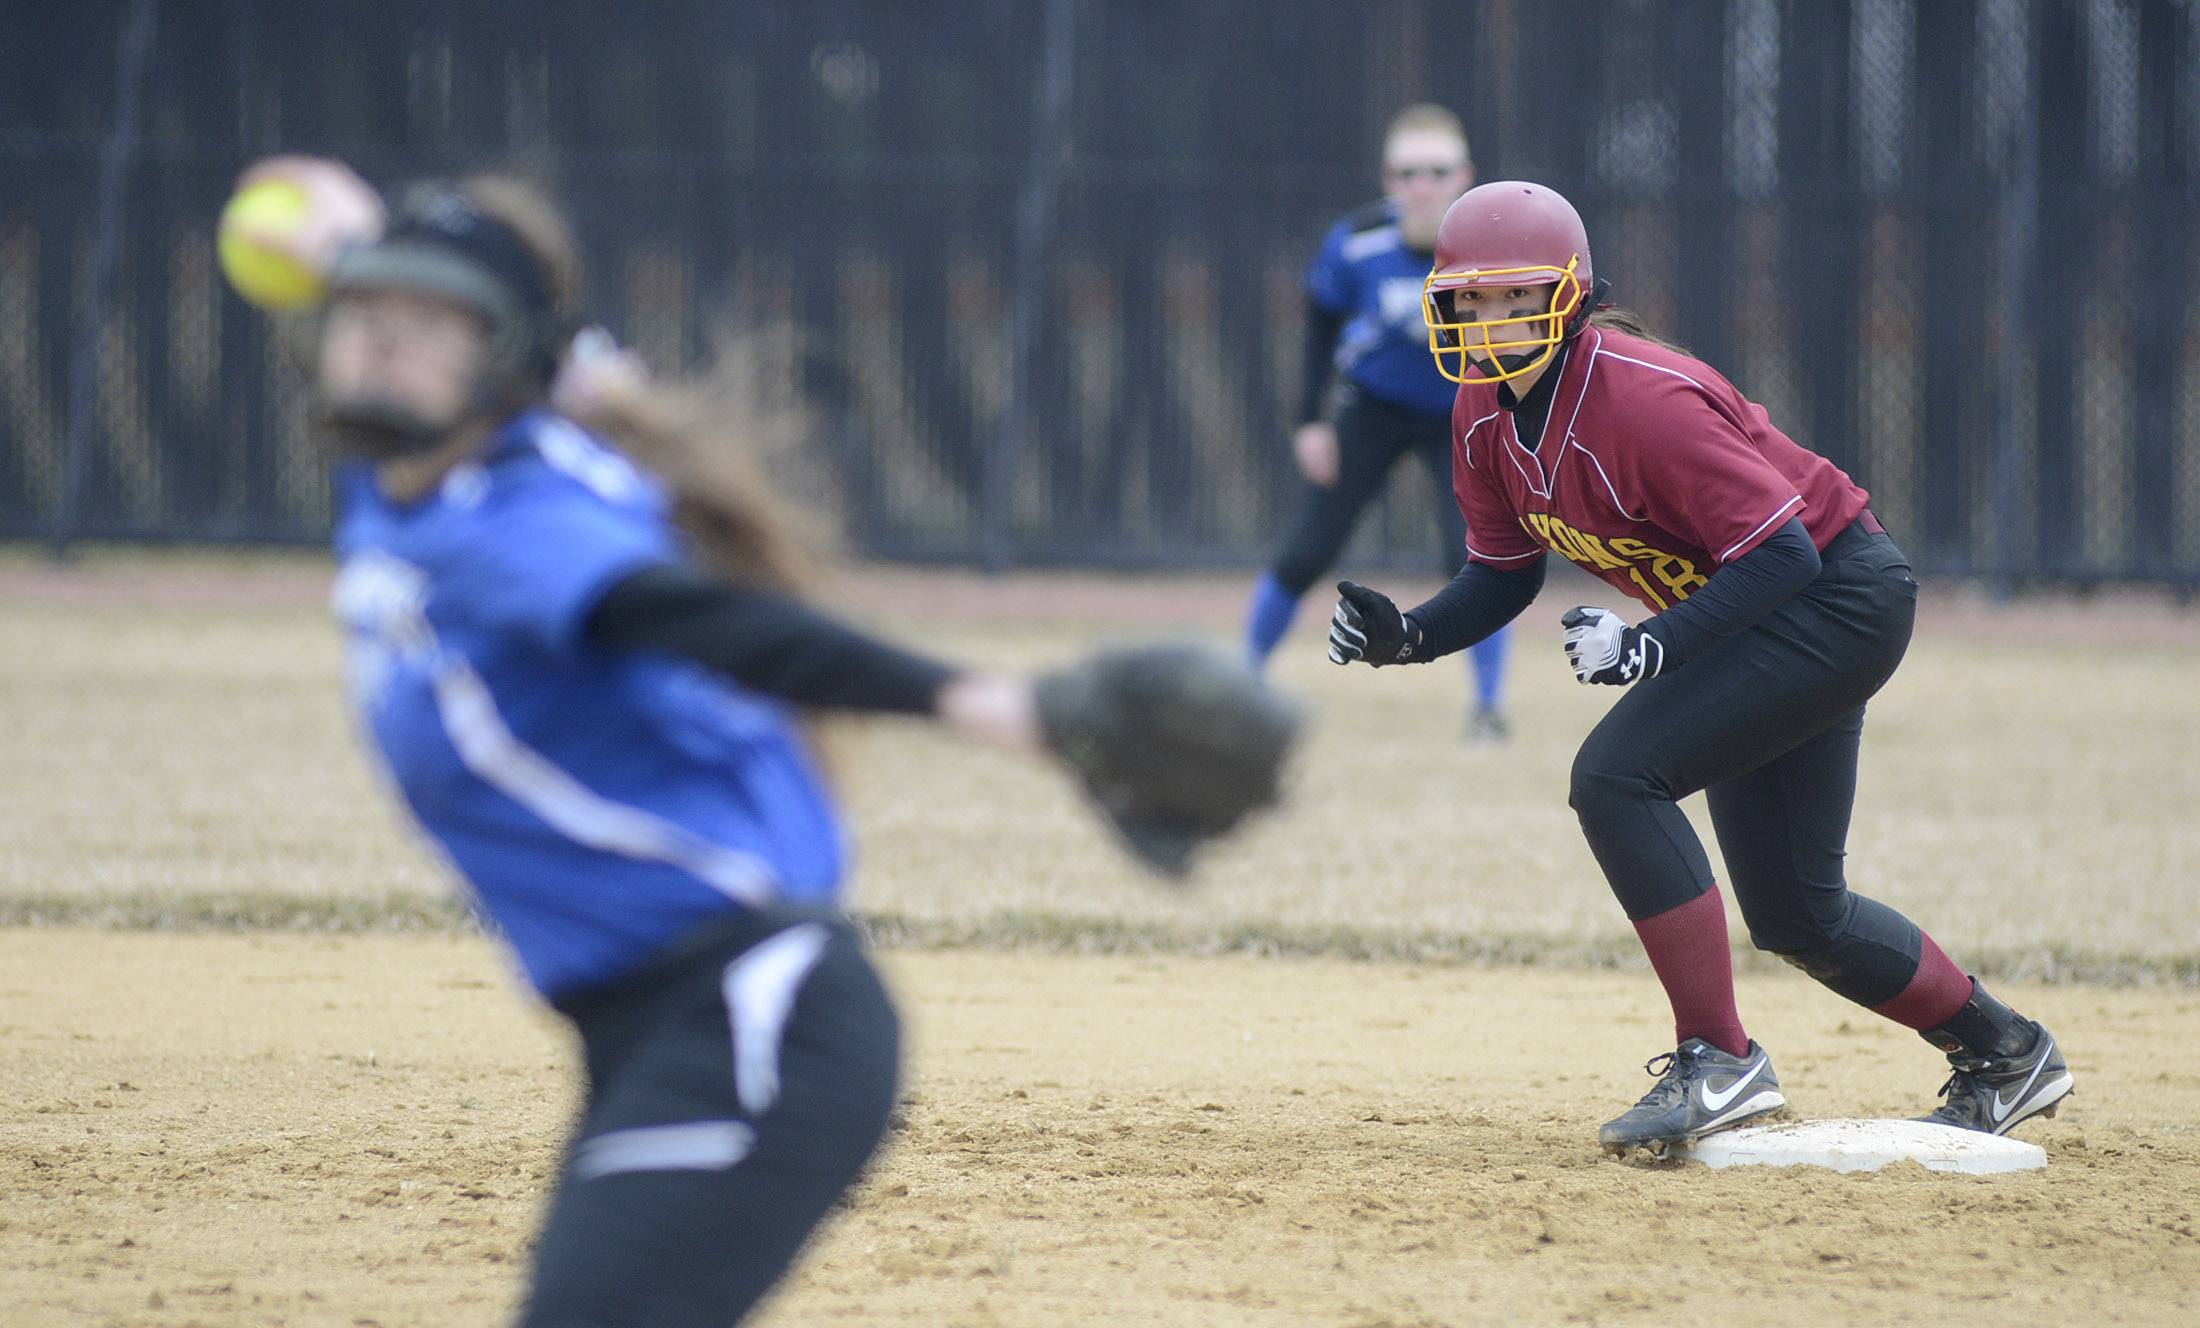 Laura Stoecker/lstoecker@dailyherald.comSchaumburg's Christina Candotti leans off second base as St. Charles North's Sabrina Rabin throws a pitch in the fourth inning on Wednesday, April 2.